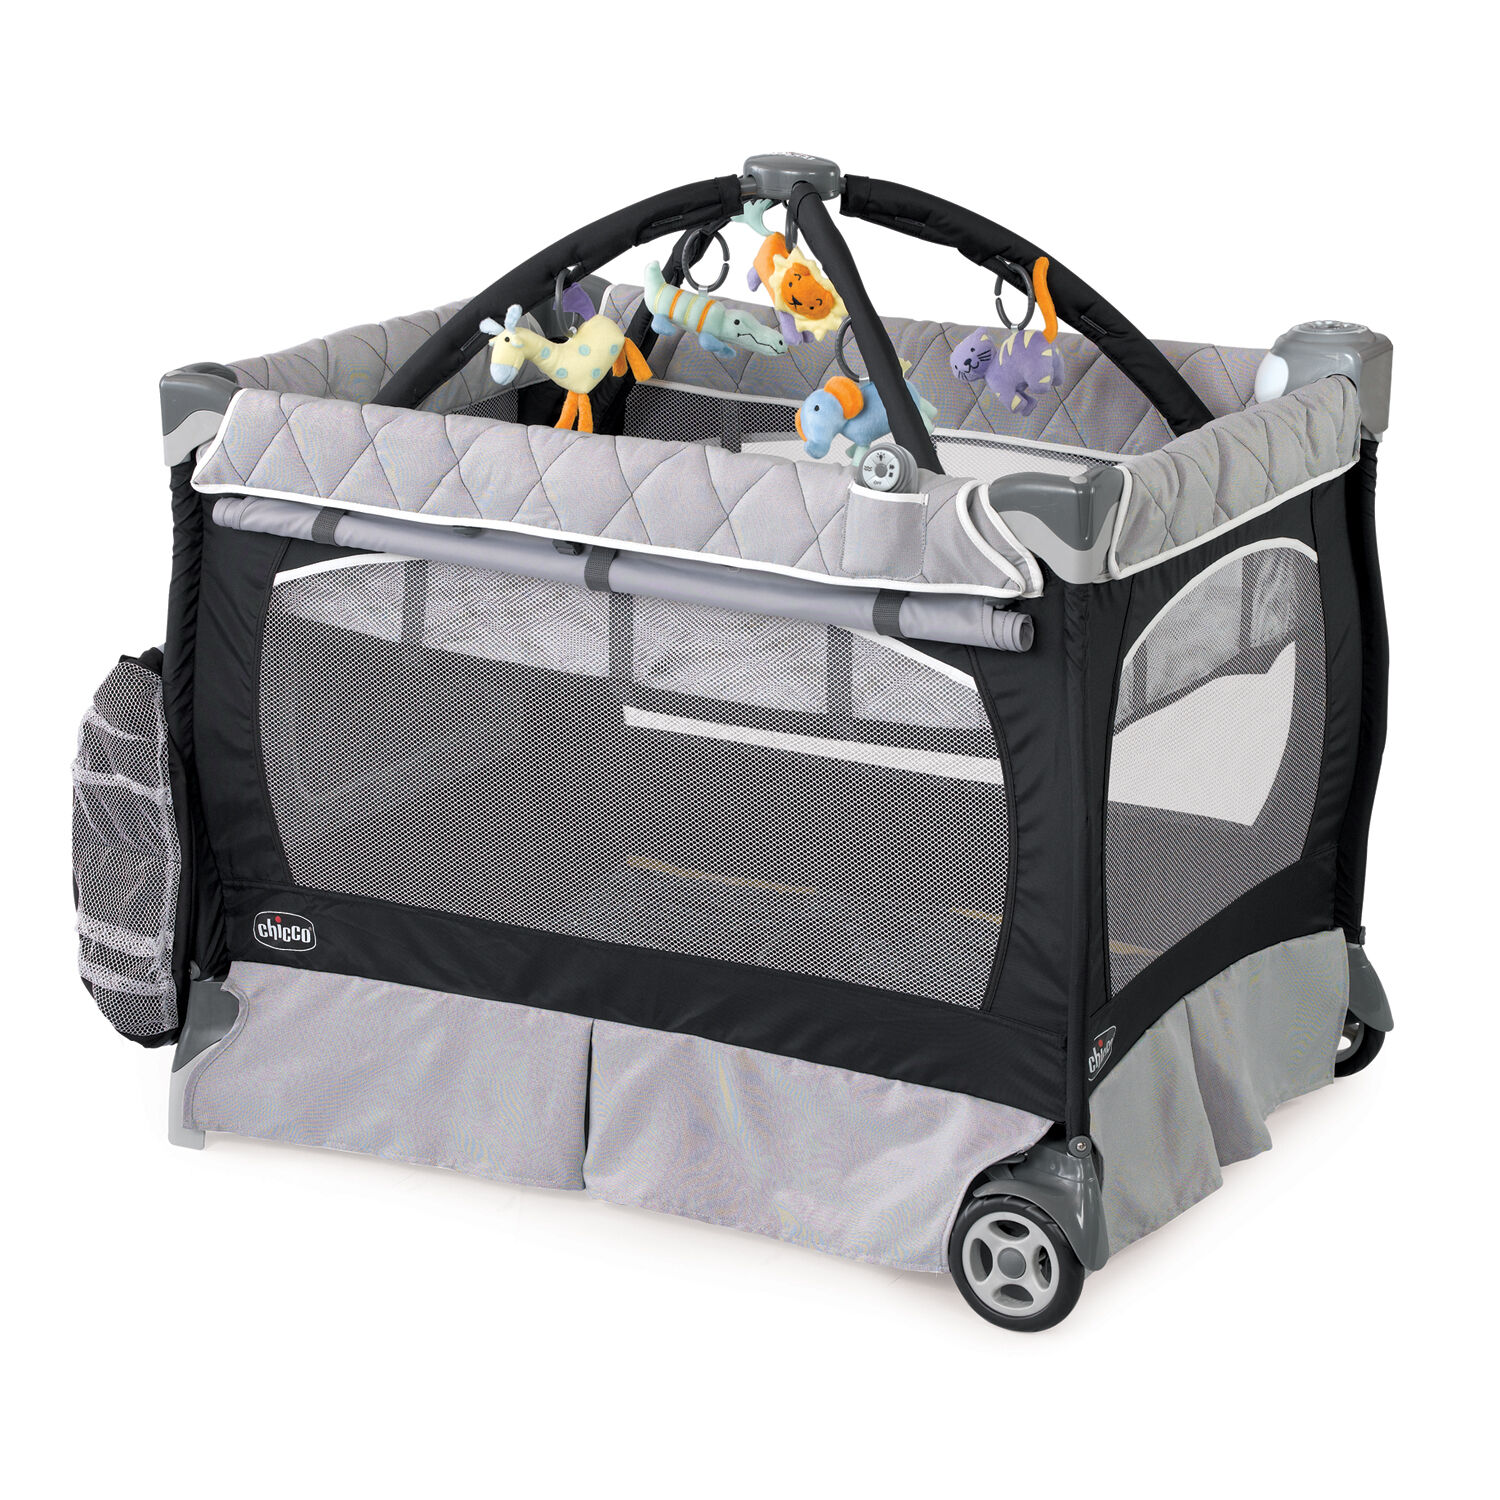 chicco lullaby lx playard romantic rh chiccousa com chicco pack and play owners manual chicco pack and play instruction manual